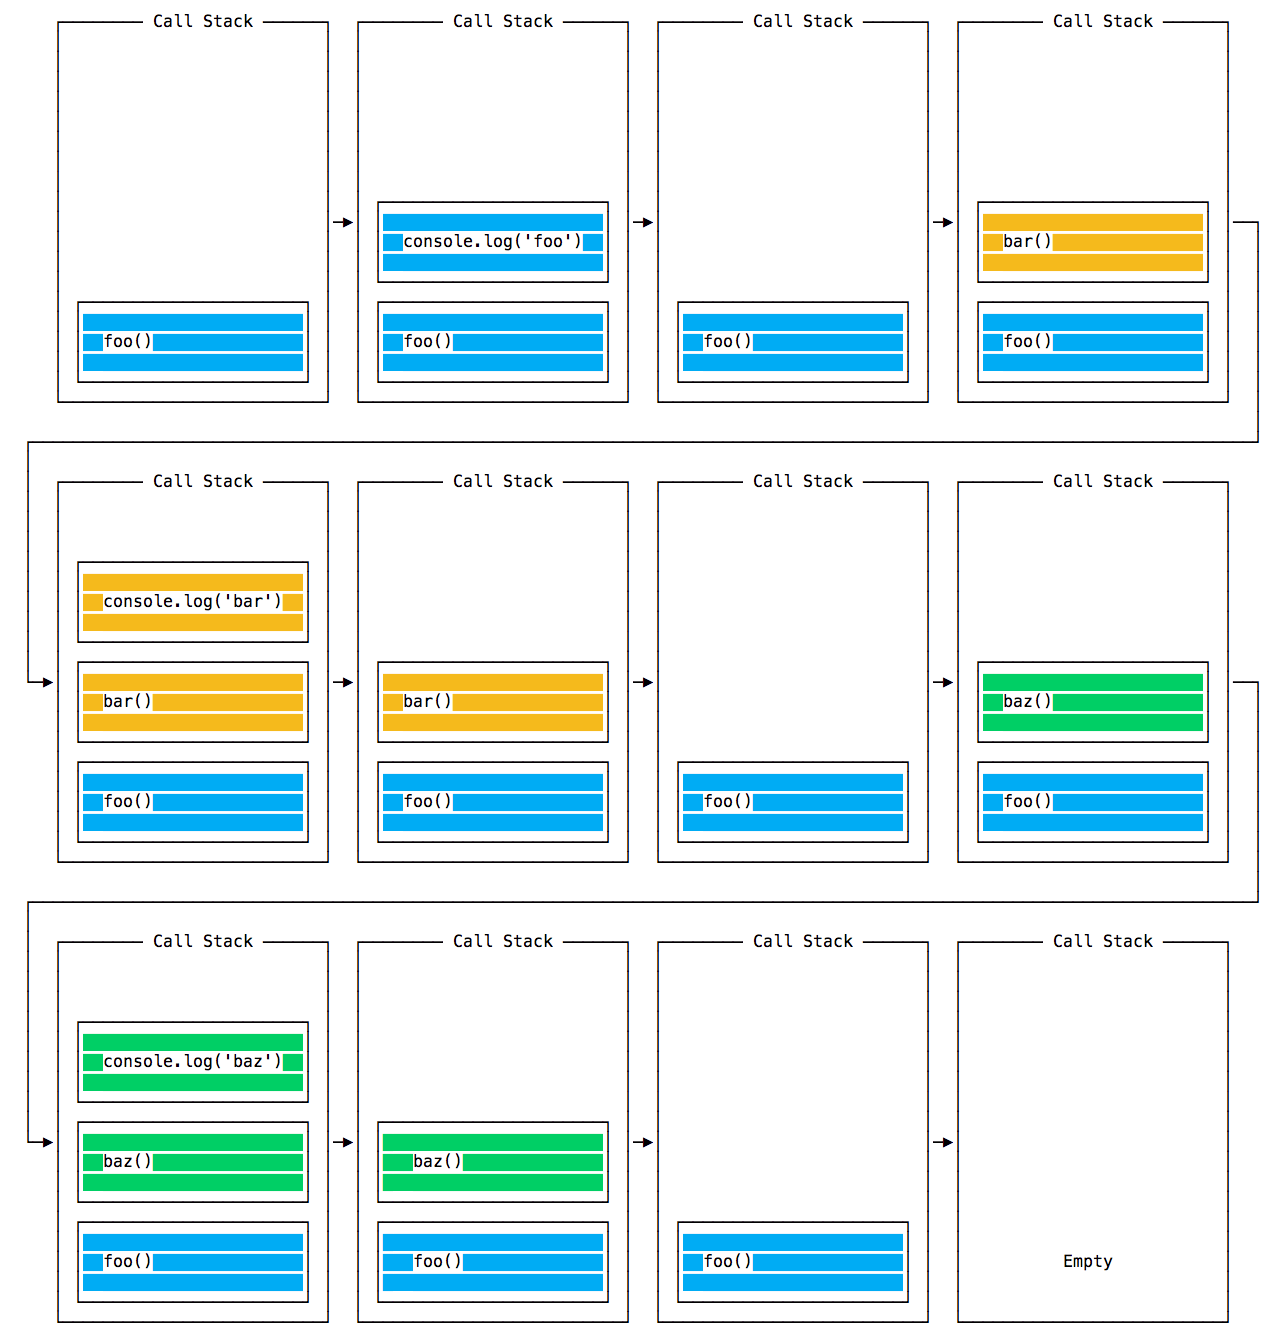 Call stack first example